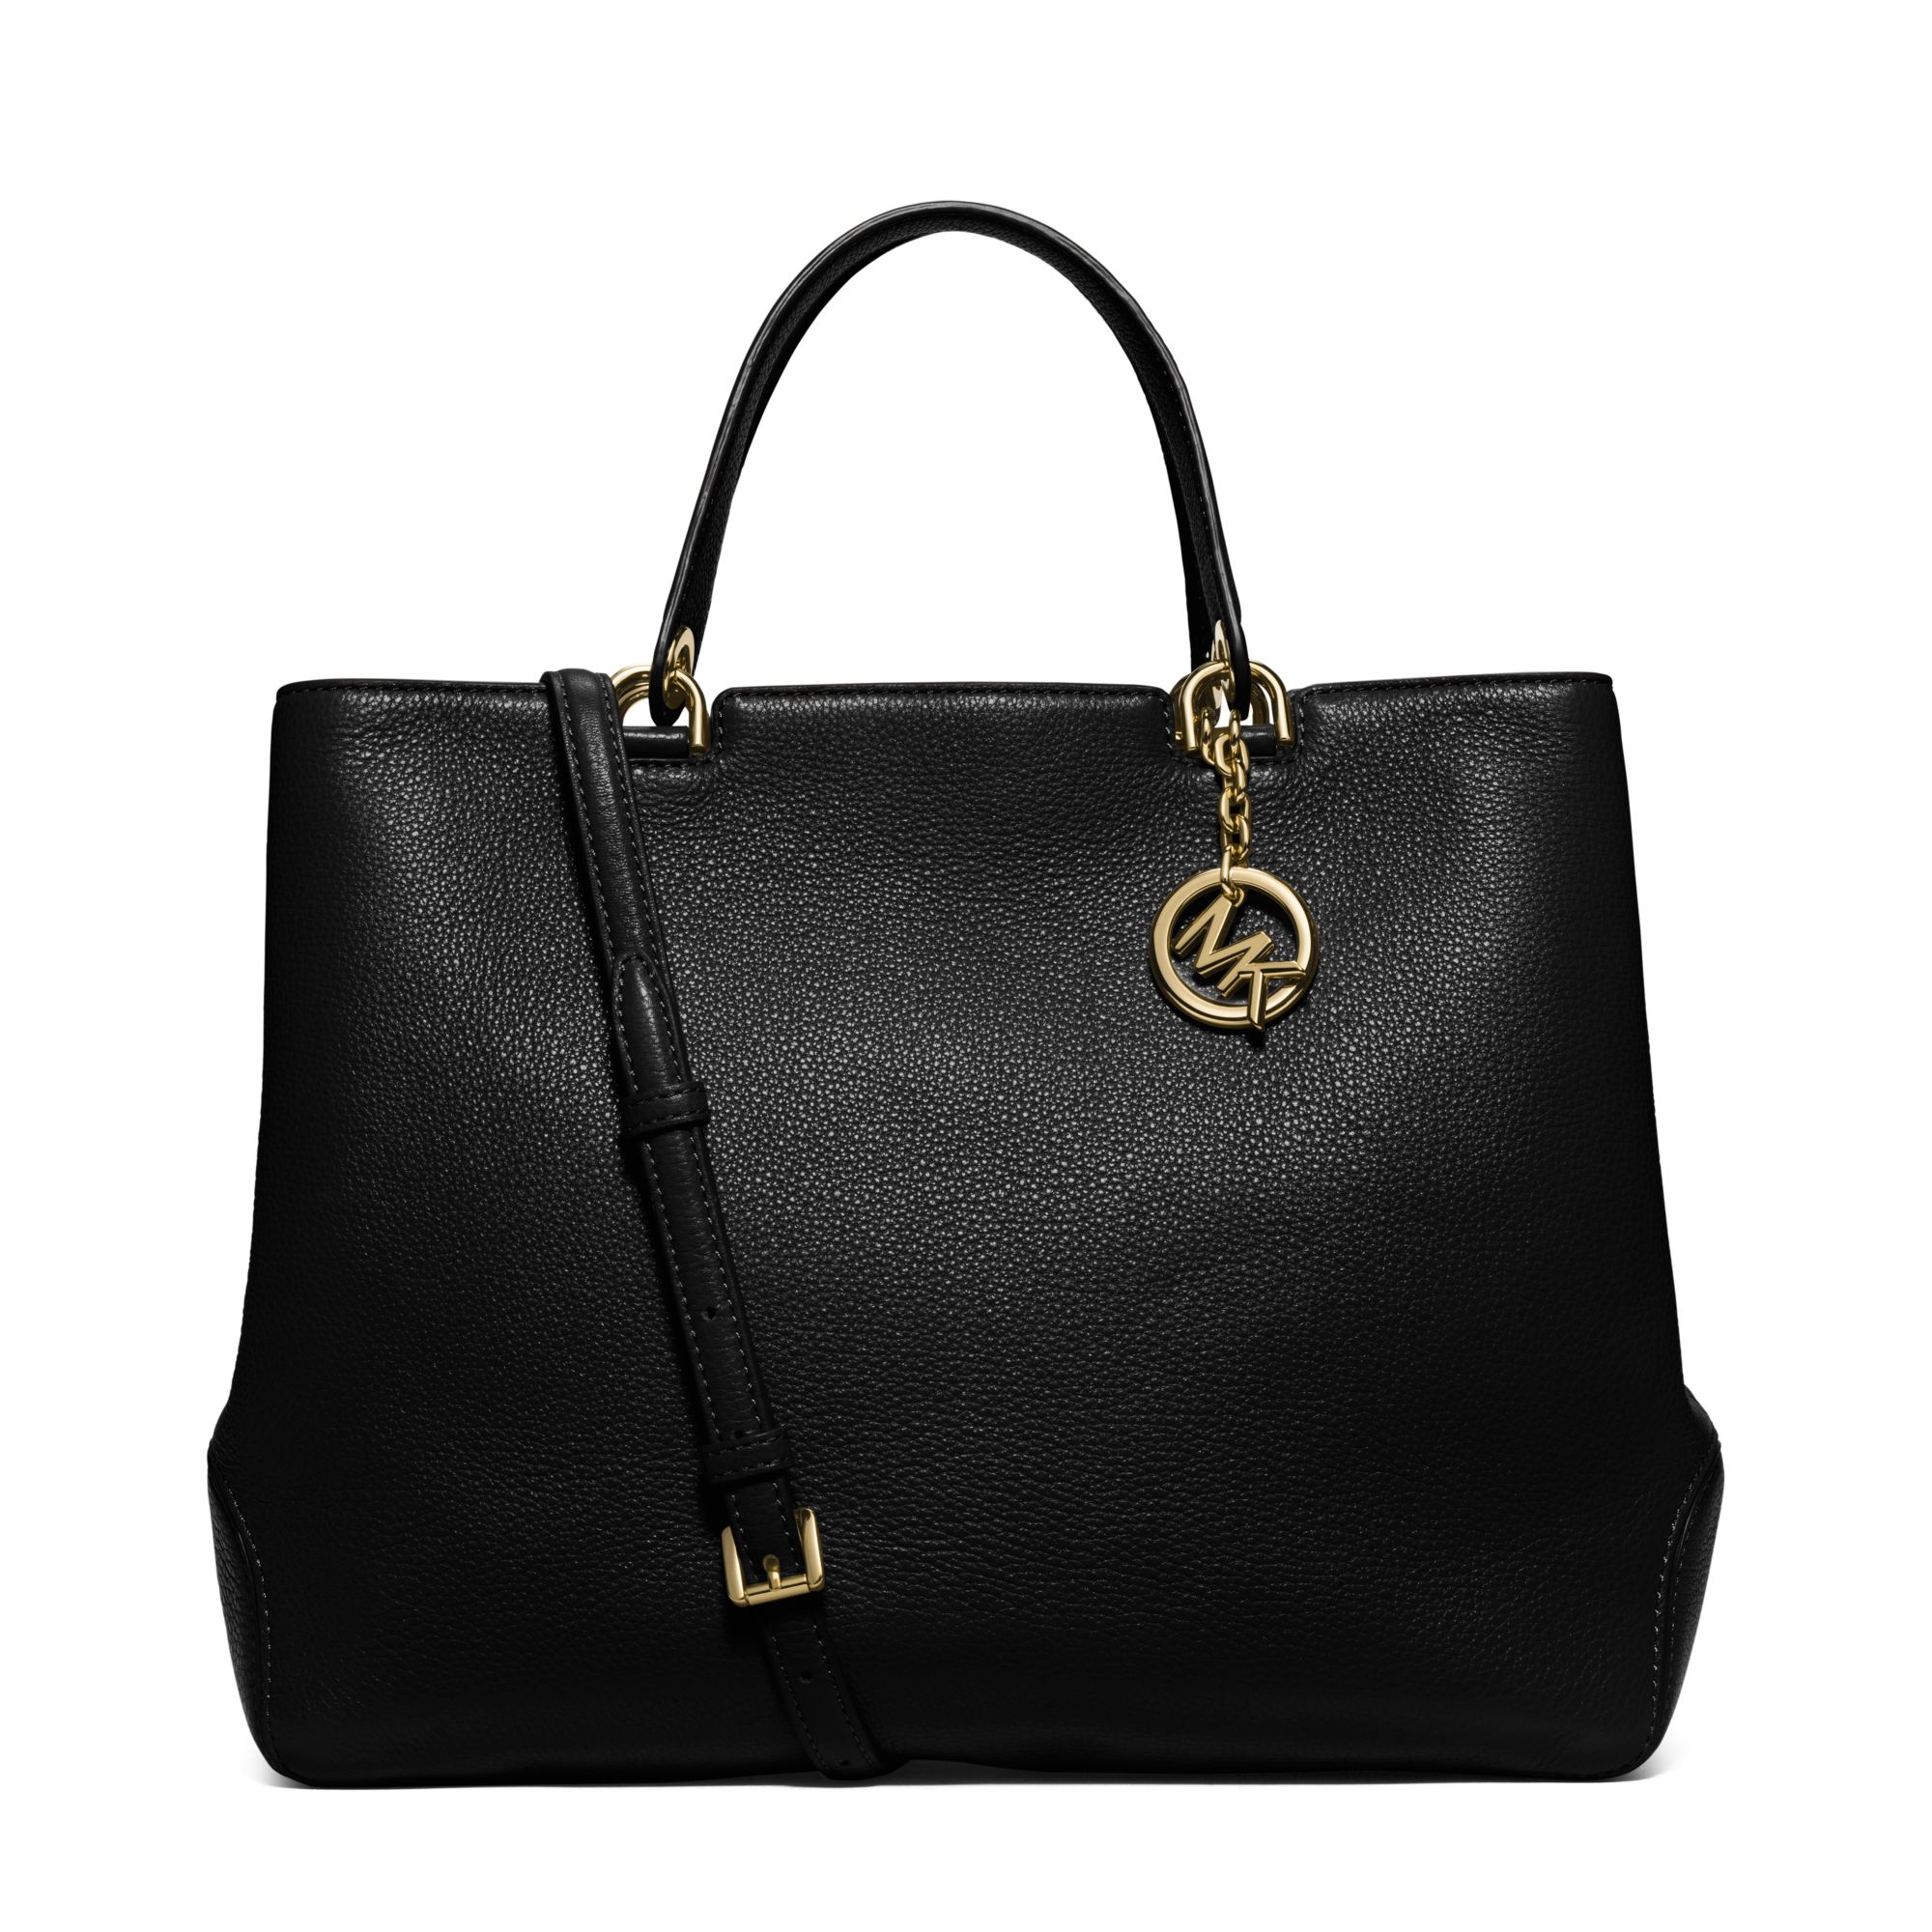 407a2bda78c3 Michael Kors Anabelle Extra-large Leather Tote in Black - Lyst